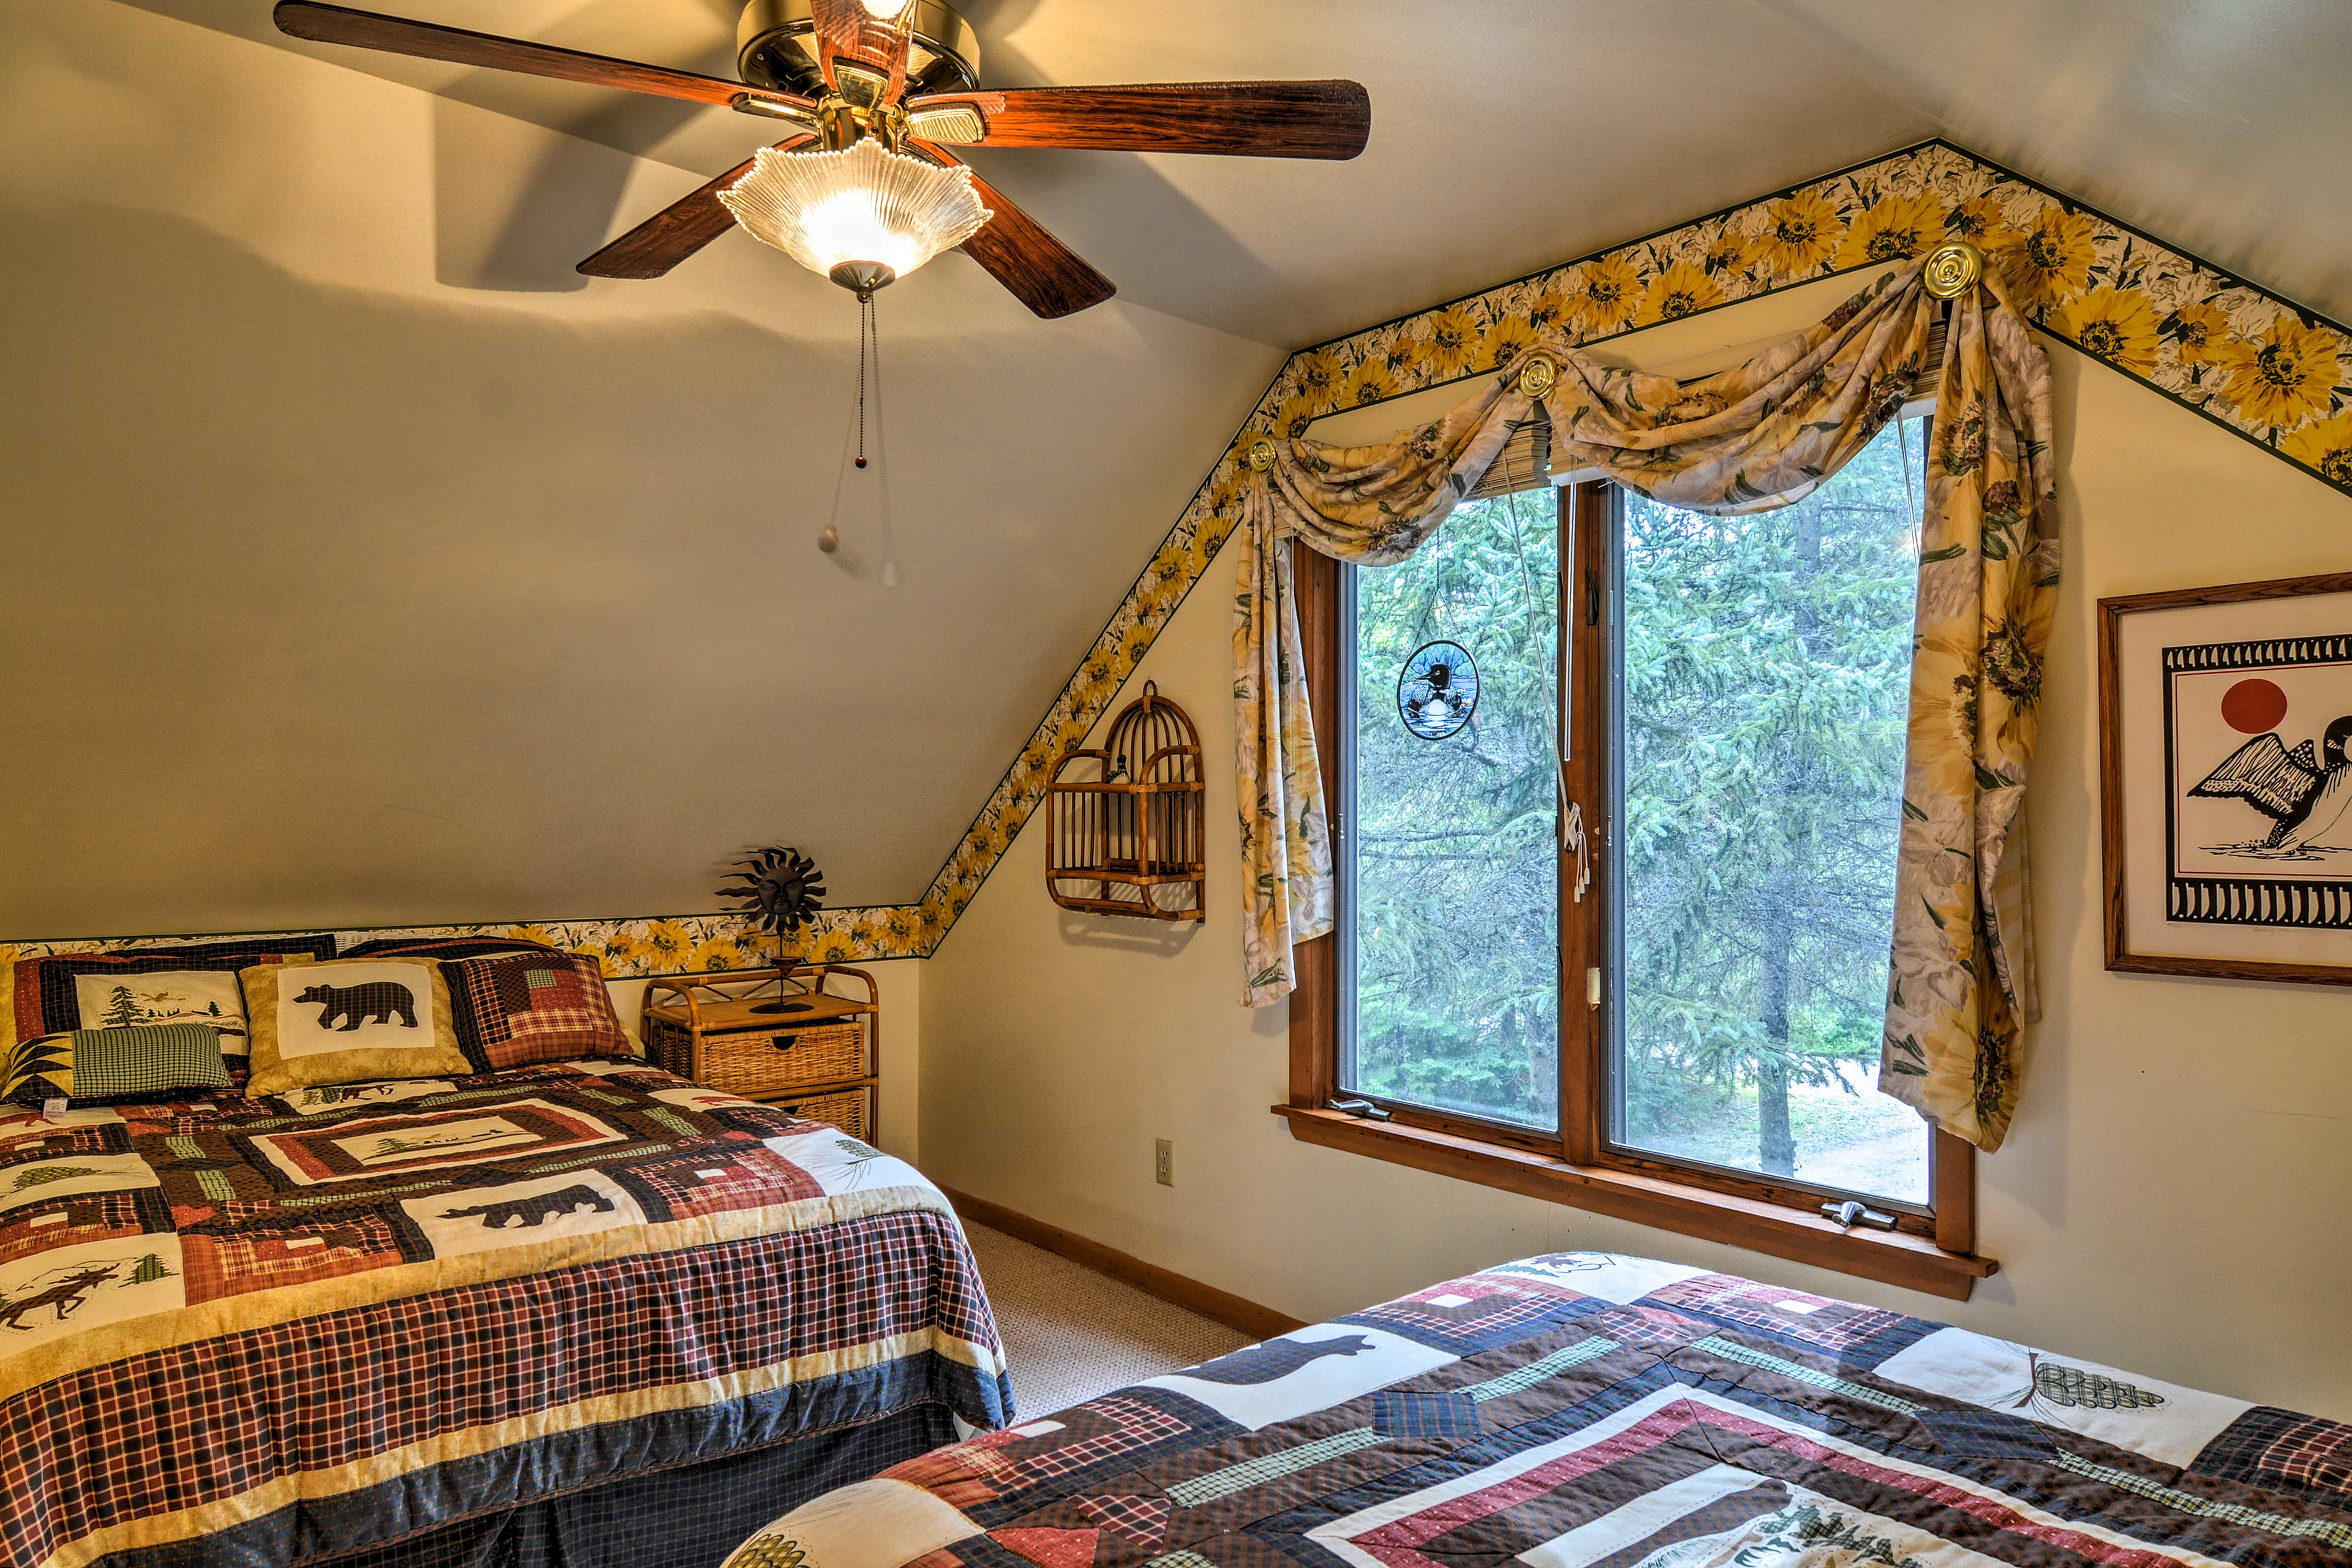 The second upstairs bedroom hosts 2 full beds.